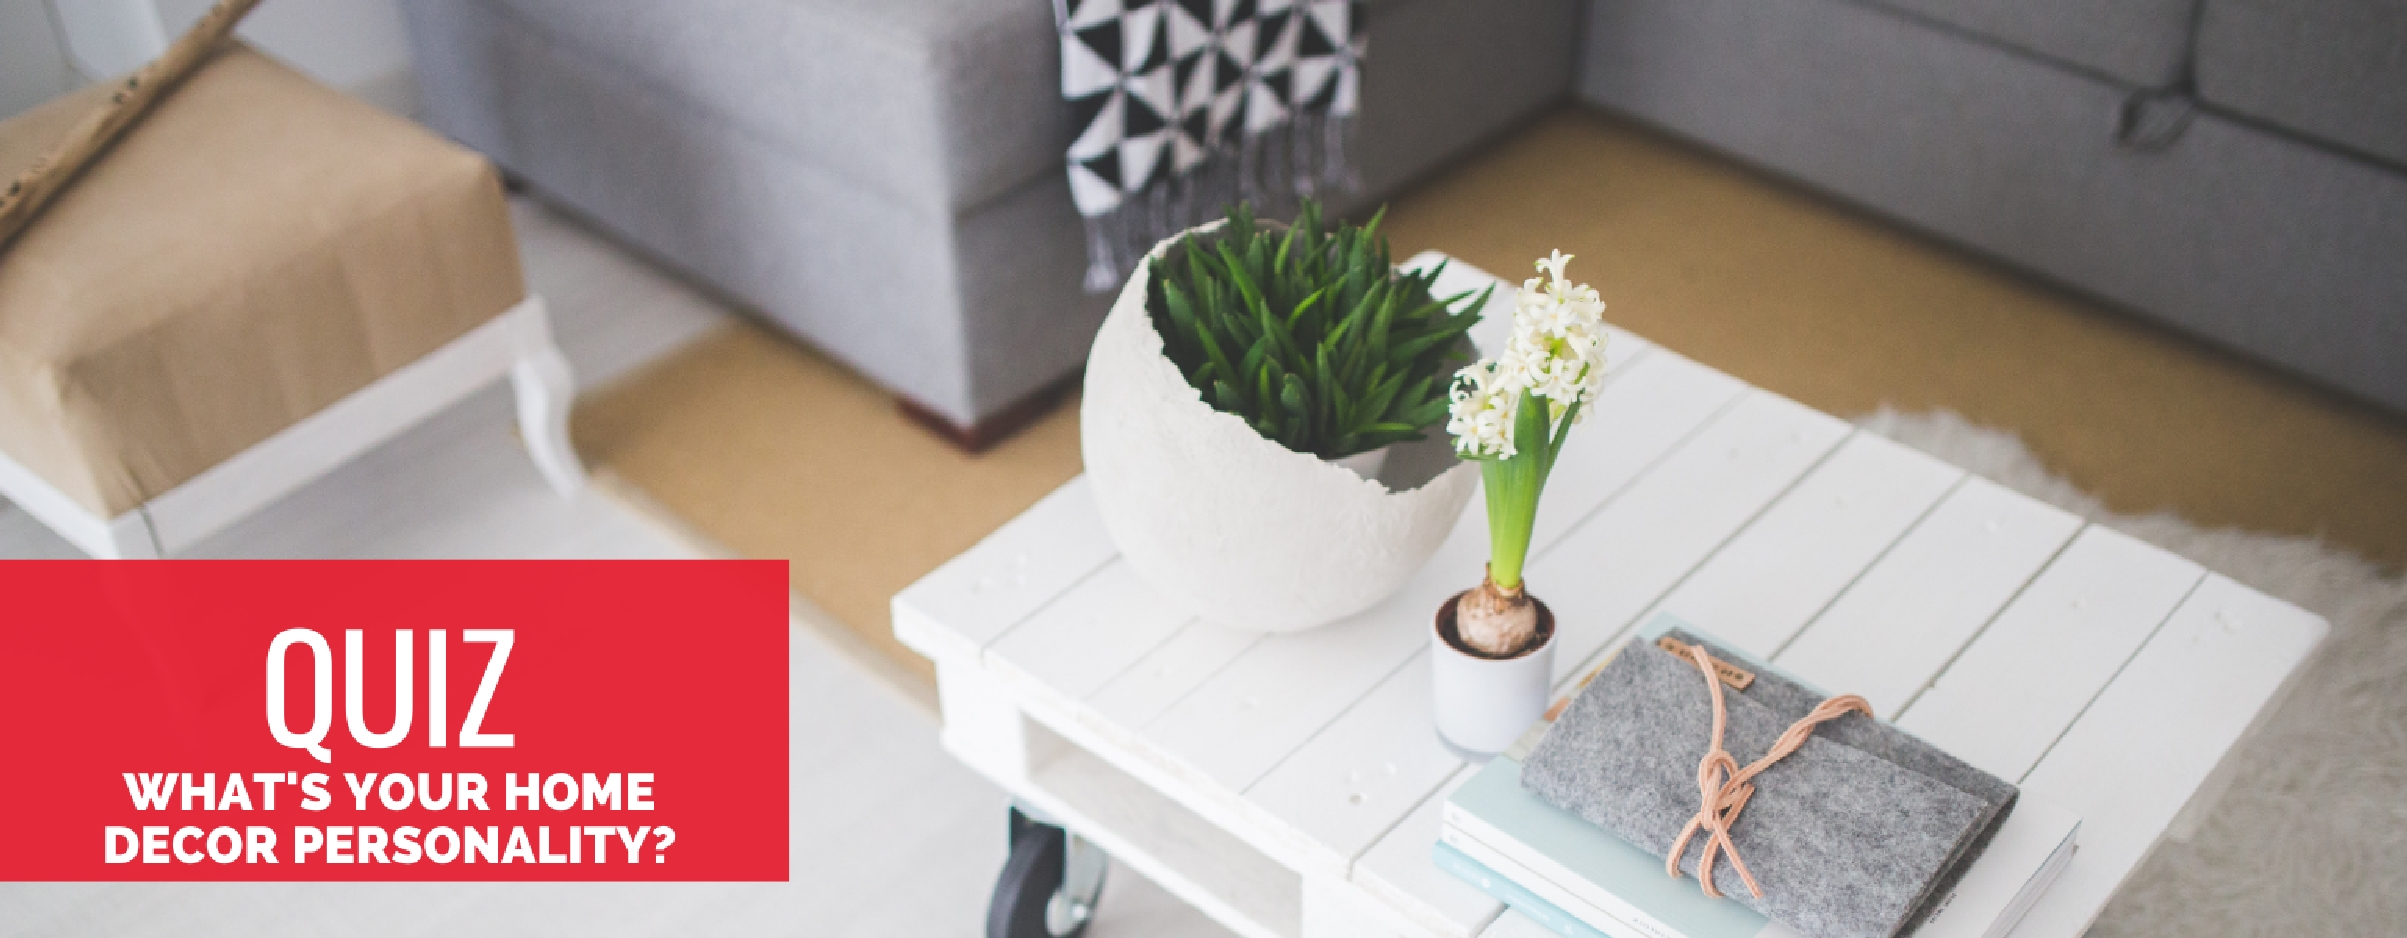 What's Your Home Decor Personality? Take The Quiz!